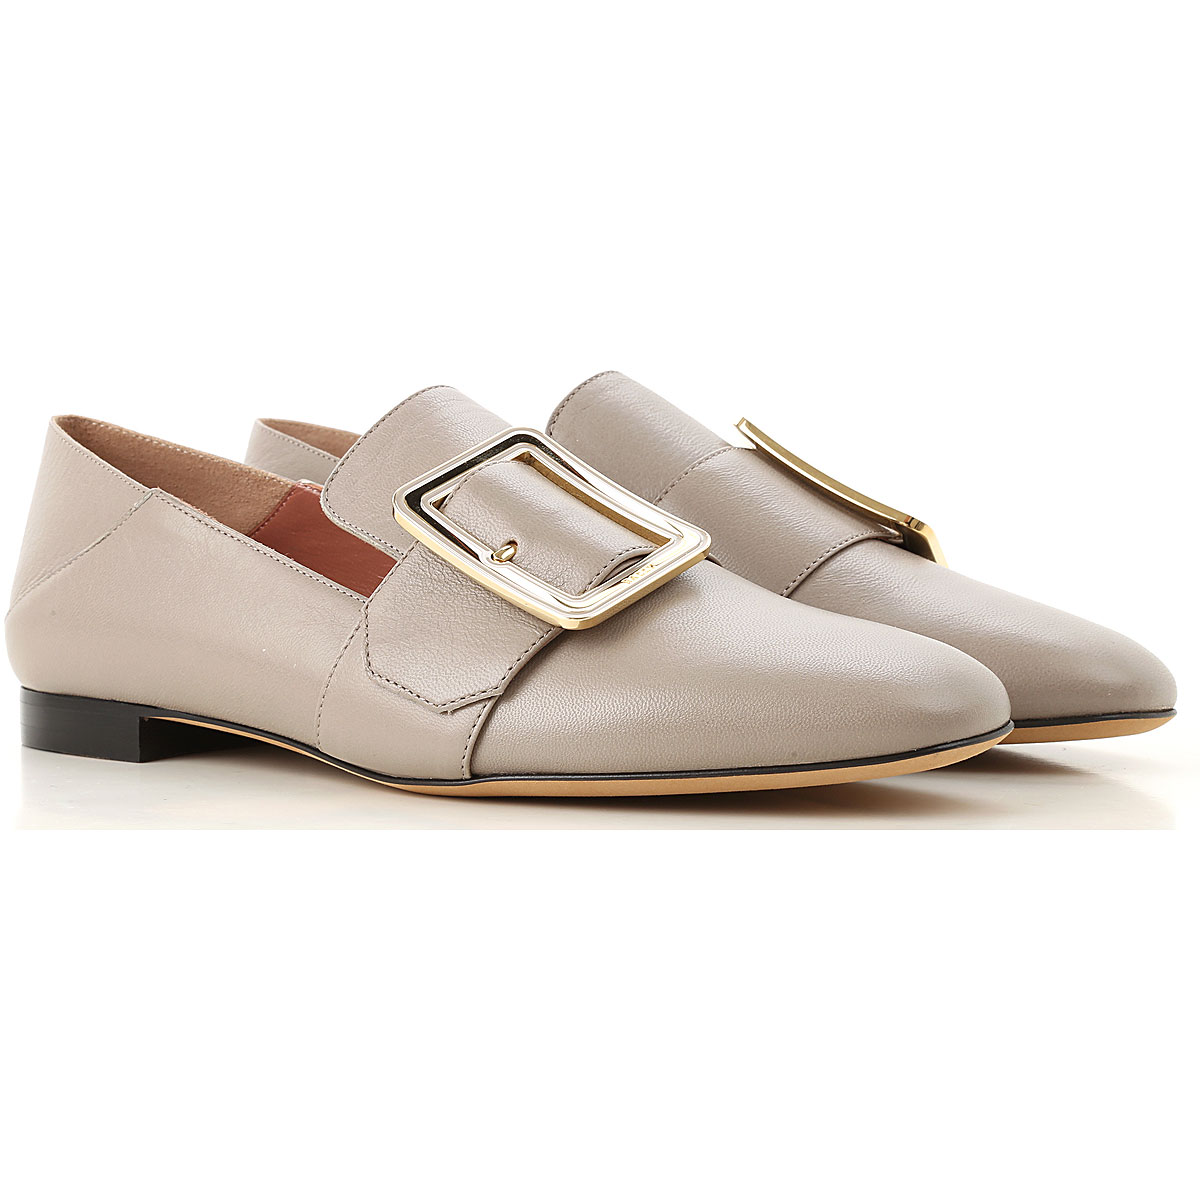 Image of Bally Loafers for Women, Grey, Leather, 2017, 8.5